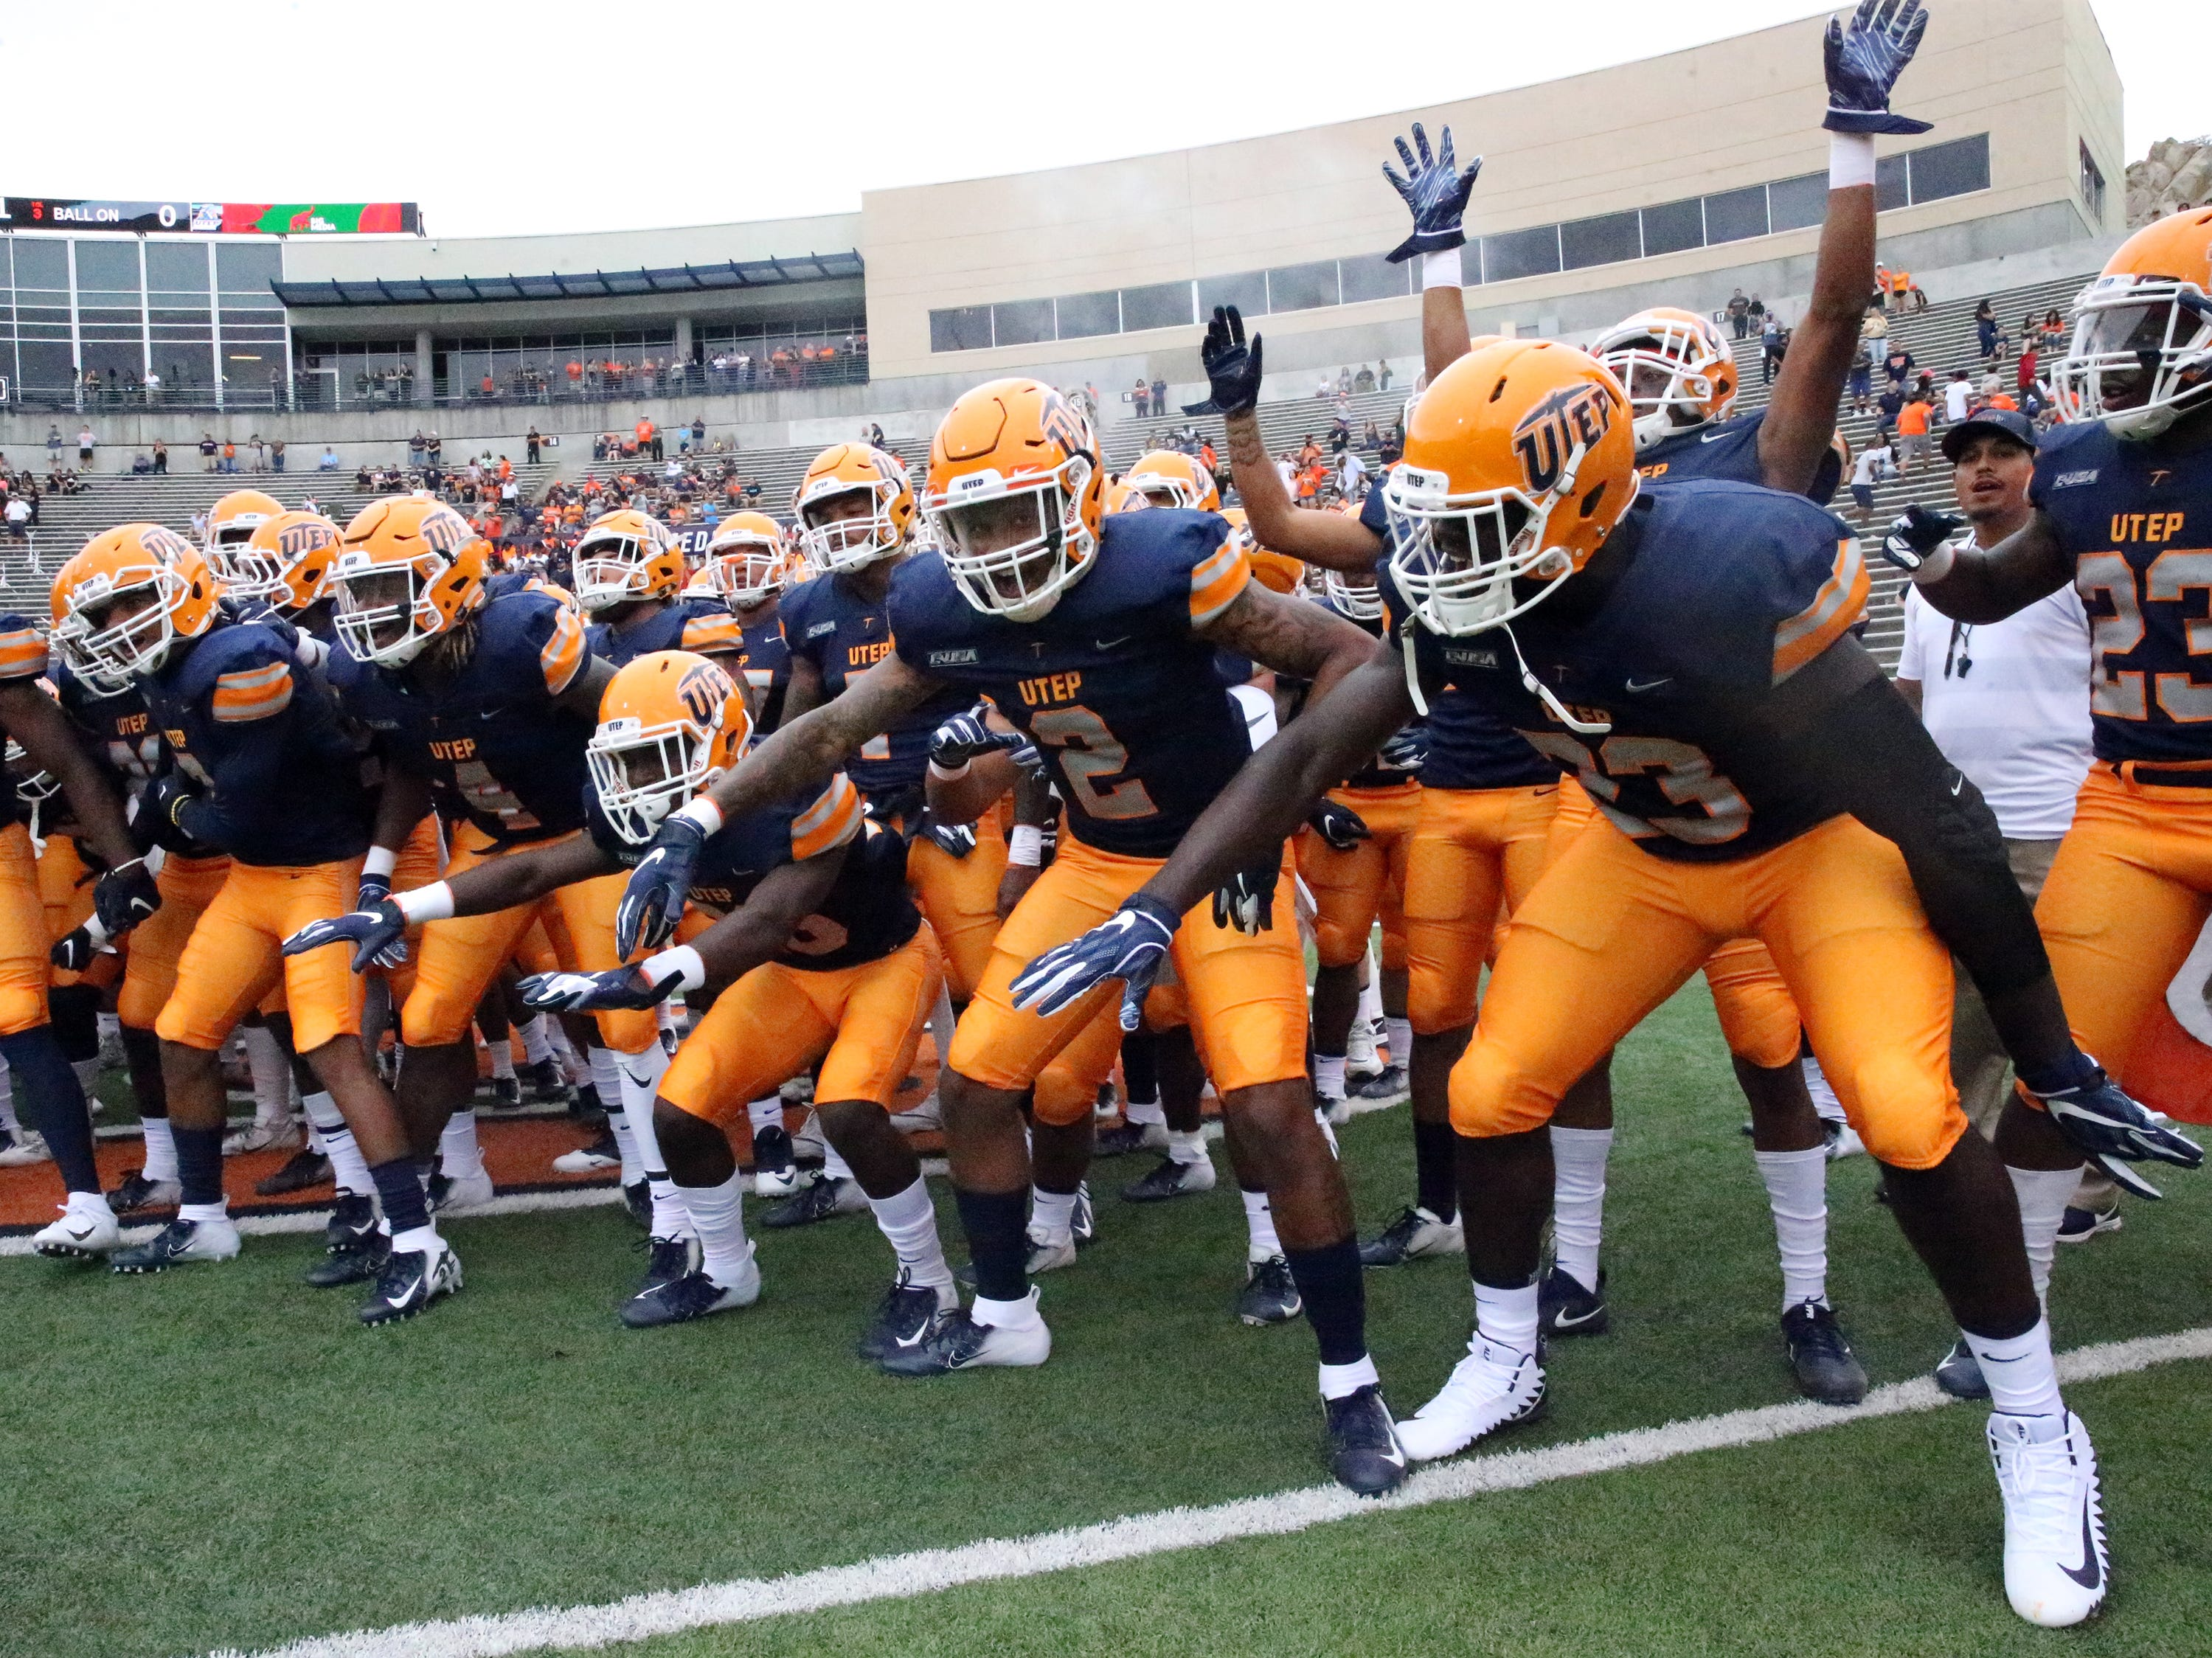 The UTEP football team rallies at the start of the season opener against Northern Arizona on Sept. 1.